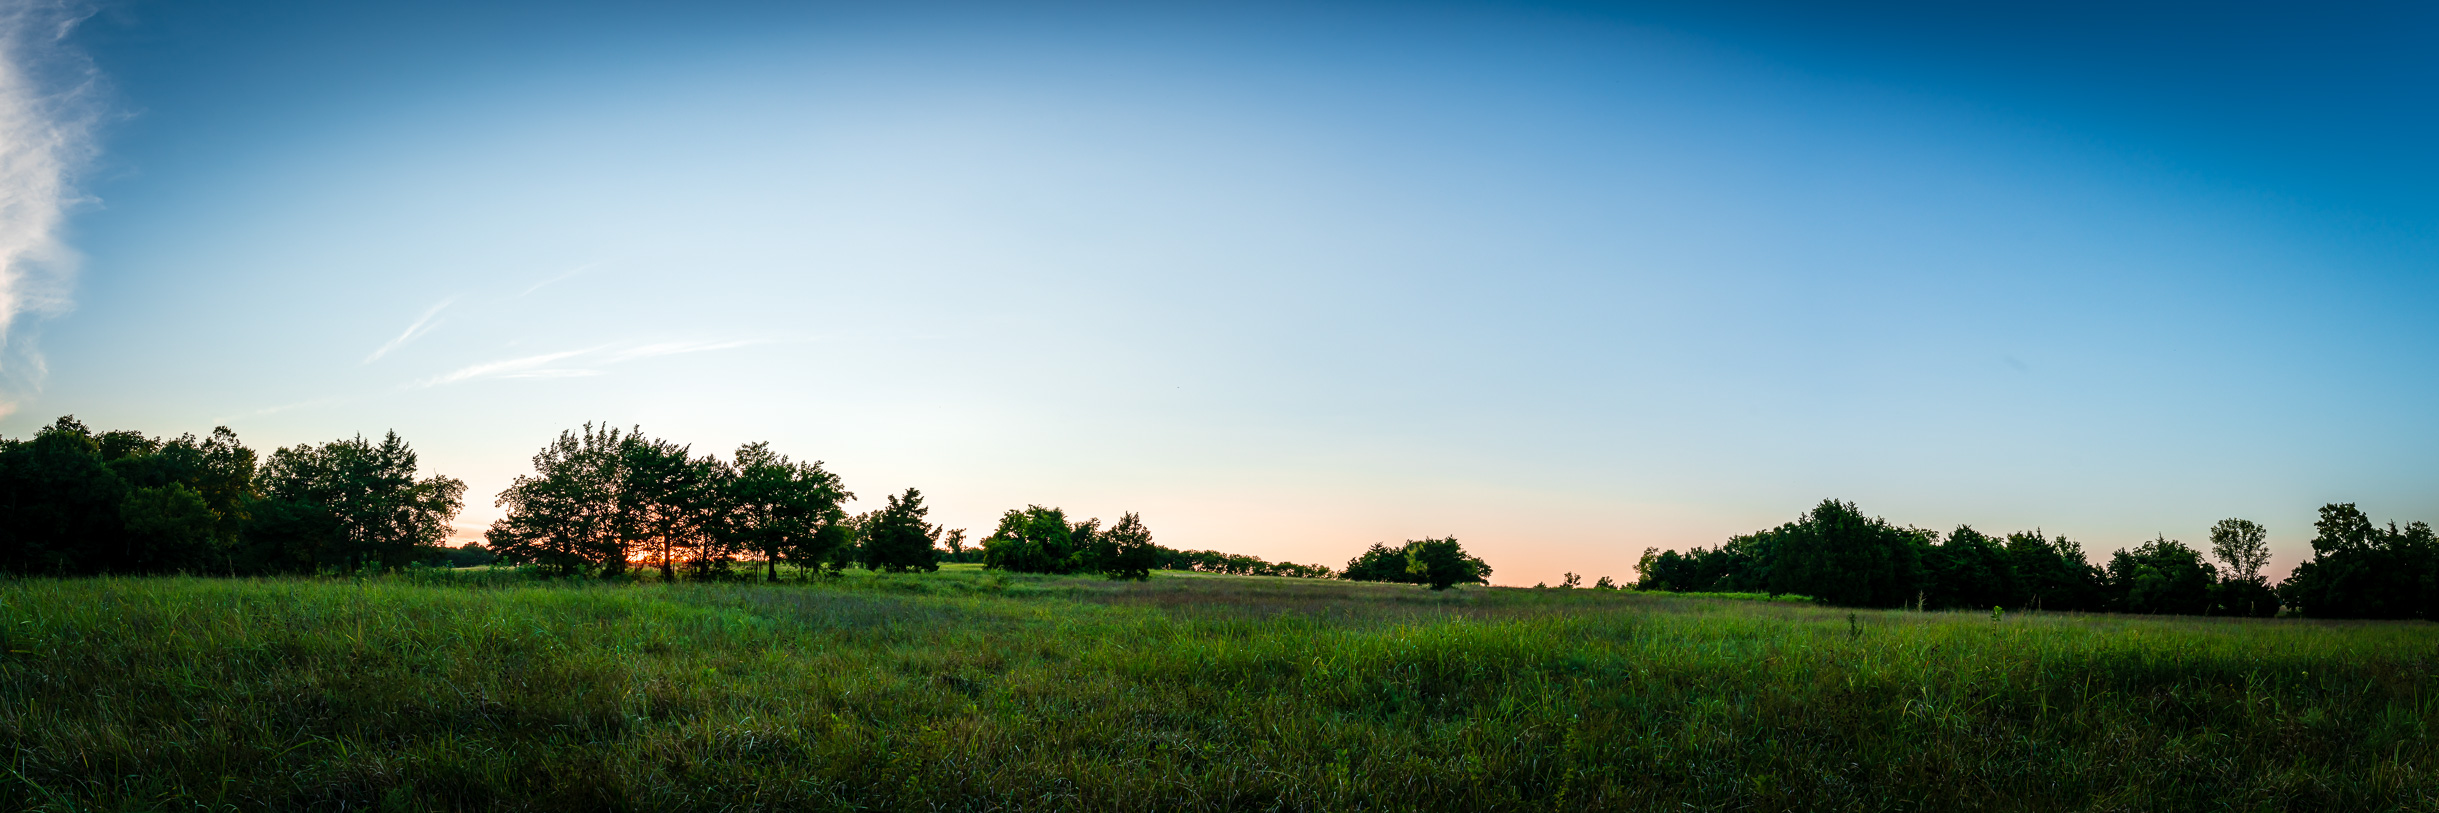 Sunset at McKinney, Texas' Erwin Park.